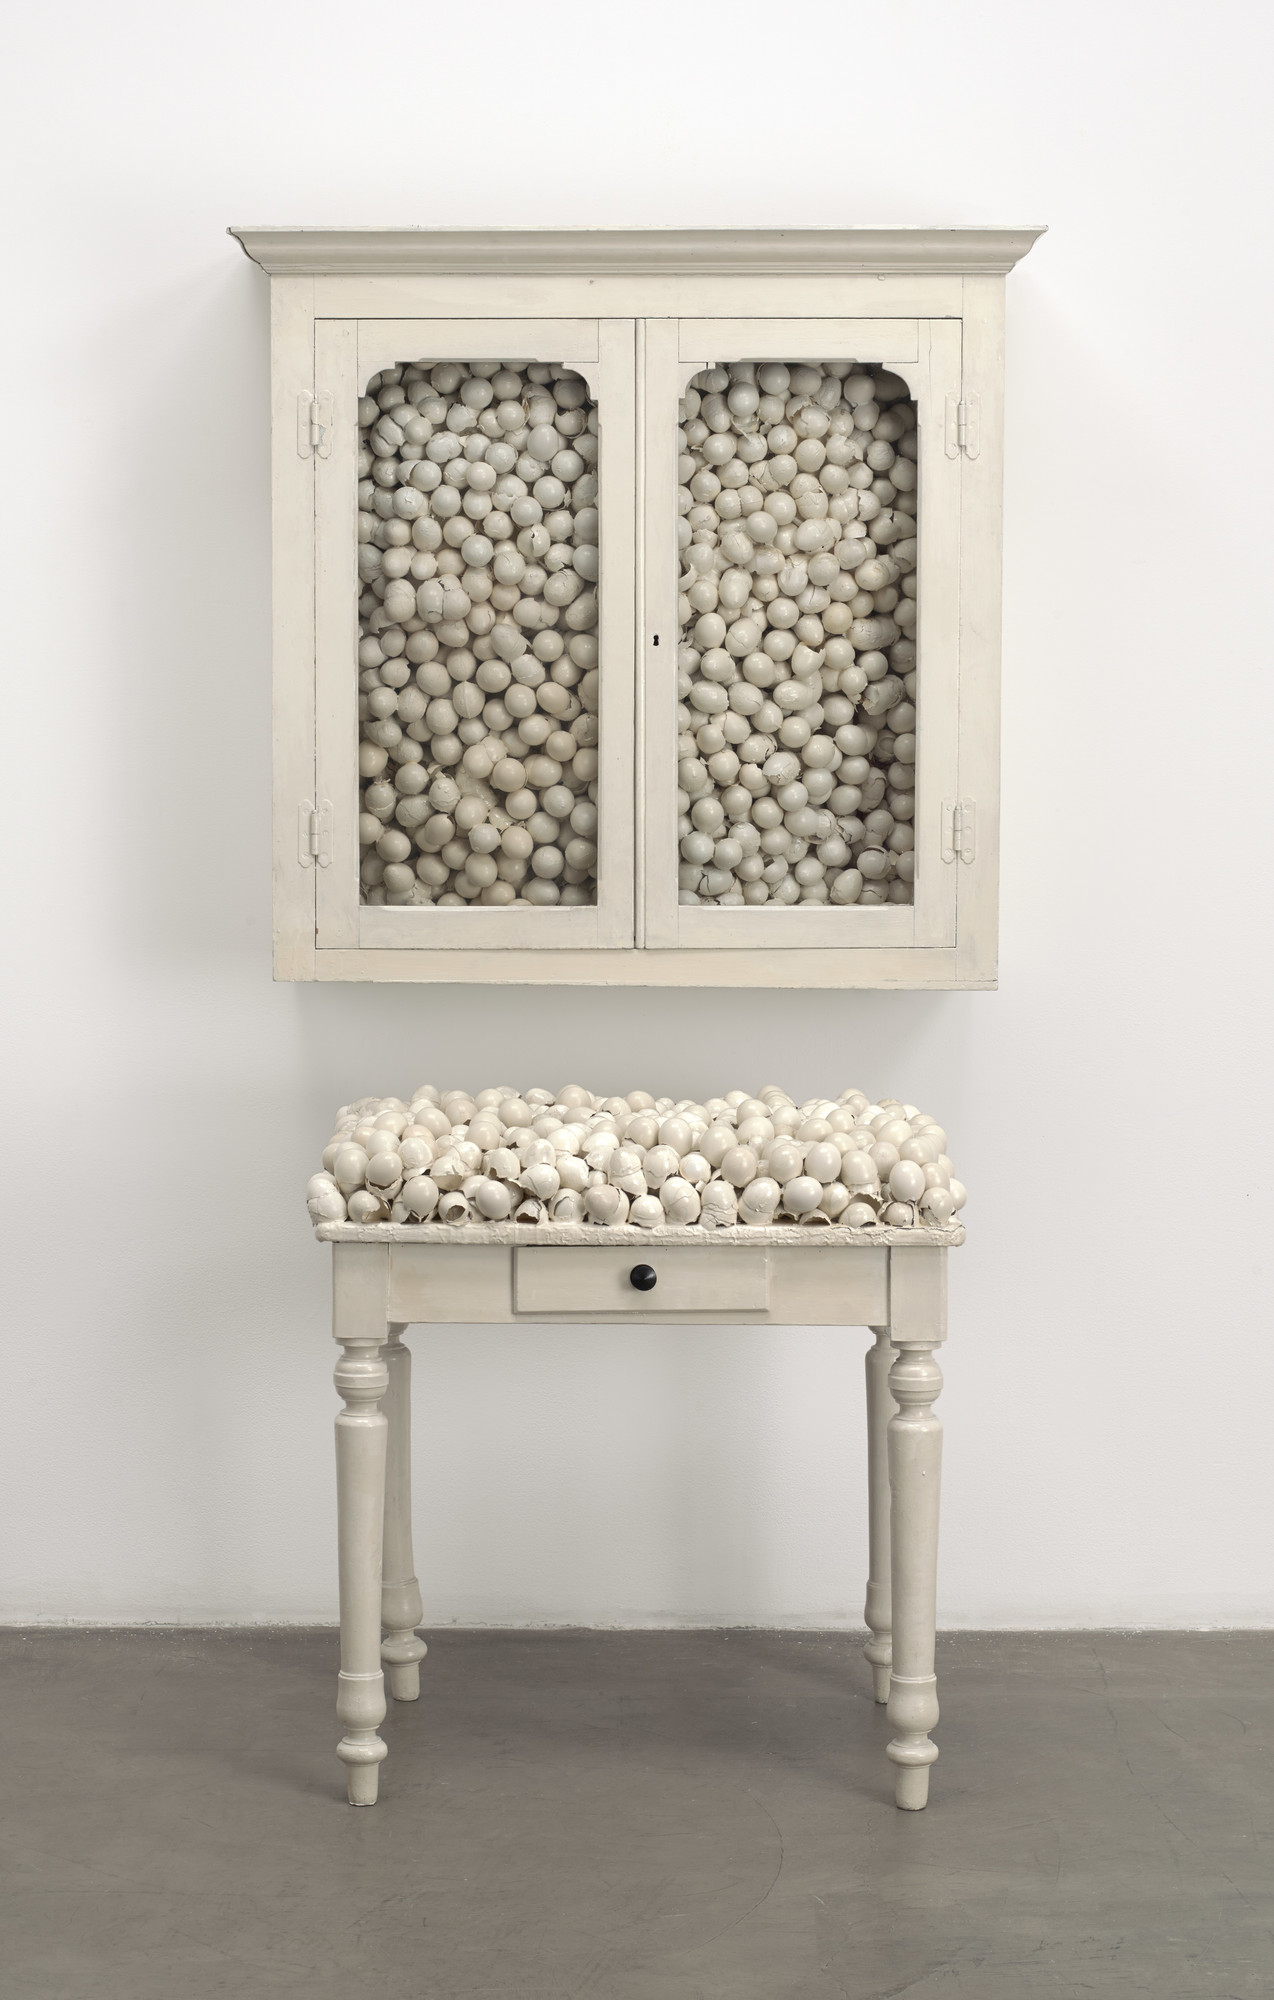 Marcel Broodthaers (Belgian, 1924–1976). Armoire blanche et table blanche (White cabinet and white table). 1965. Painted furniture with eggshells, cabinet: 33 7/8 × 32 1/4 × 24 1/2 in. (86 × 82 × 62 cm); table: 41 × 39 3/8 × 15 3/4 in. (104 × 100 × 40 cm). The Museum of Modern Art, New York. Fractional and promised gift of Jo Carole and Ronald S. Lauder, 1992. © 2016 Estate of Marcel Broodthaers / Artists Rights Society (ARS), New York / SABAM, Brussels